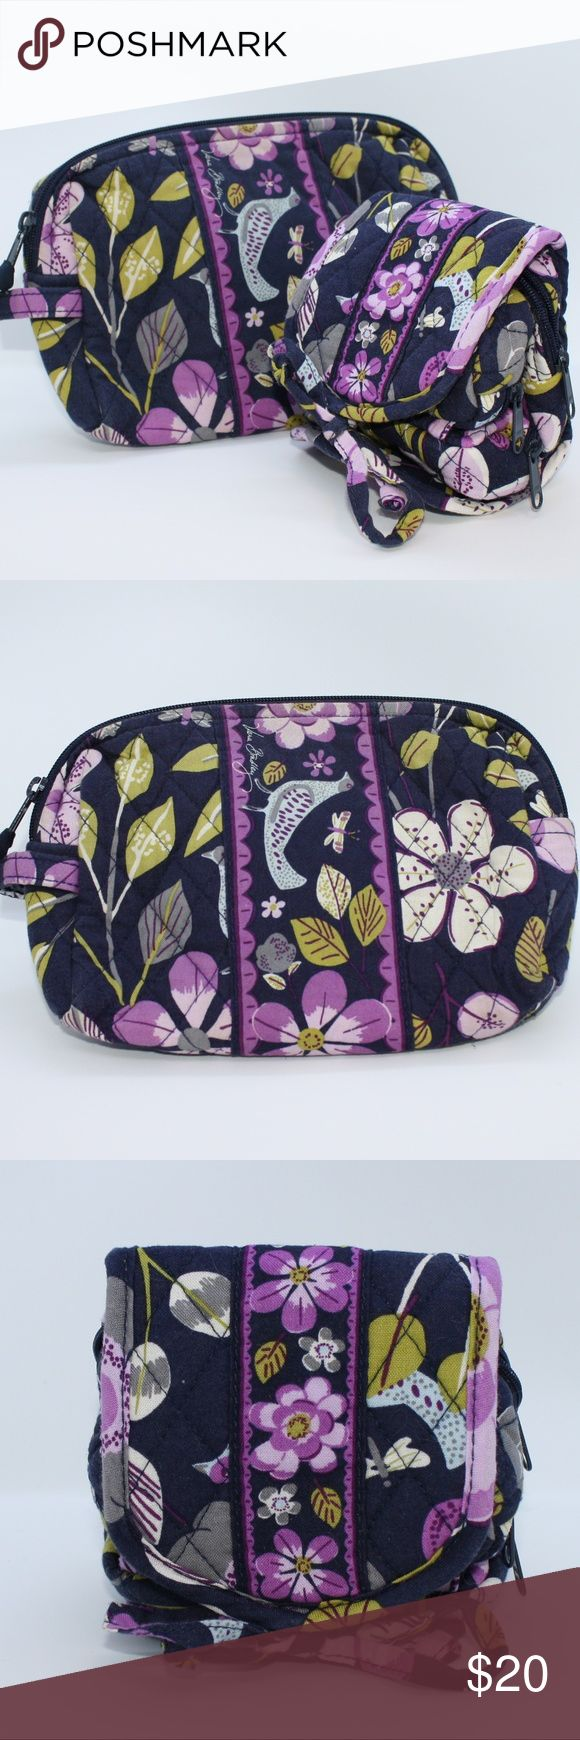 Vera Bradley Floral Nightingale Bag Bundle Vera Bradley Small Cosmetic Bag & Vera Bradley All Wrapped Up Jewelry/Cosmetic Travel Case  The cosmetic bag has two small nail polish stains on the inside plastic liner. But overall is in great shape! The jewelry roll case looks like it was never used!  This is a retired pattern and still is very on trend and stylish today. Save big with this 2 bag combo! Vera Bradley Bags Cosmetic Bags & Cases